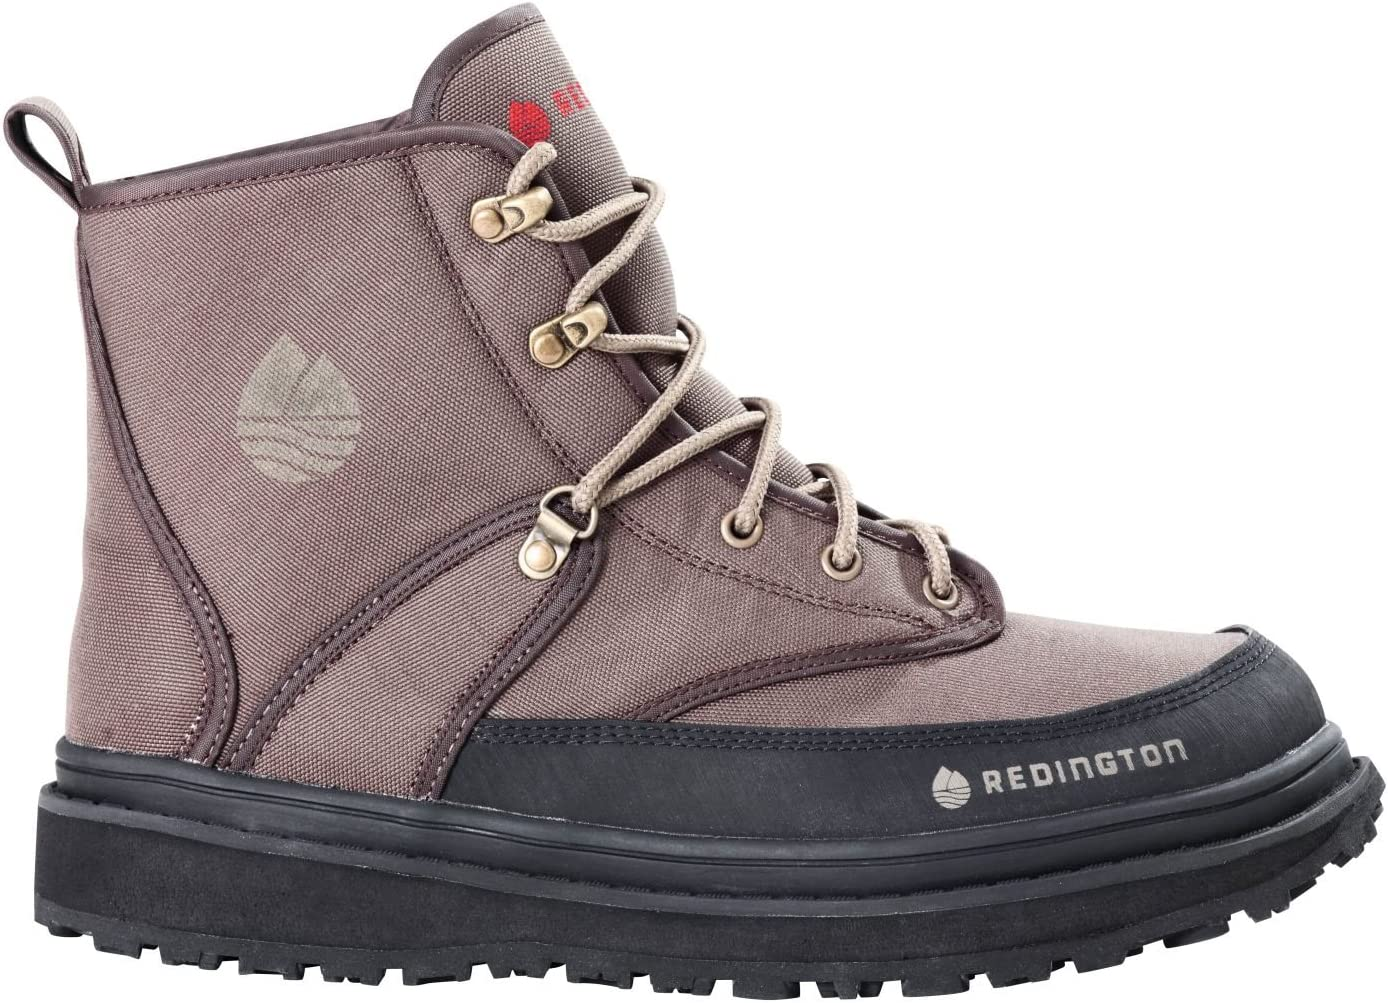 NEW REDINGTON WILLOW RIVER WOMENS STICKY RUBBER SOLE WADING BOOT SZ 8 fishing